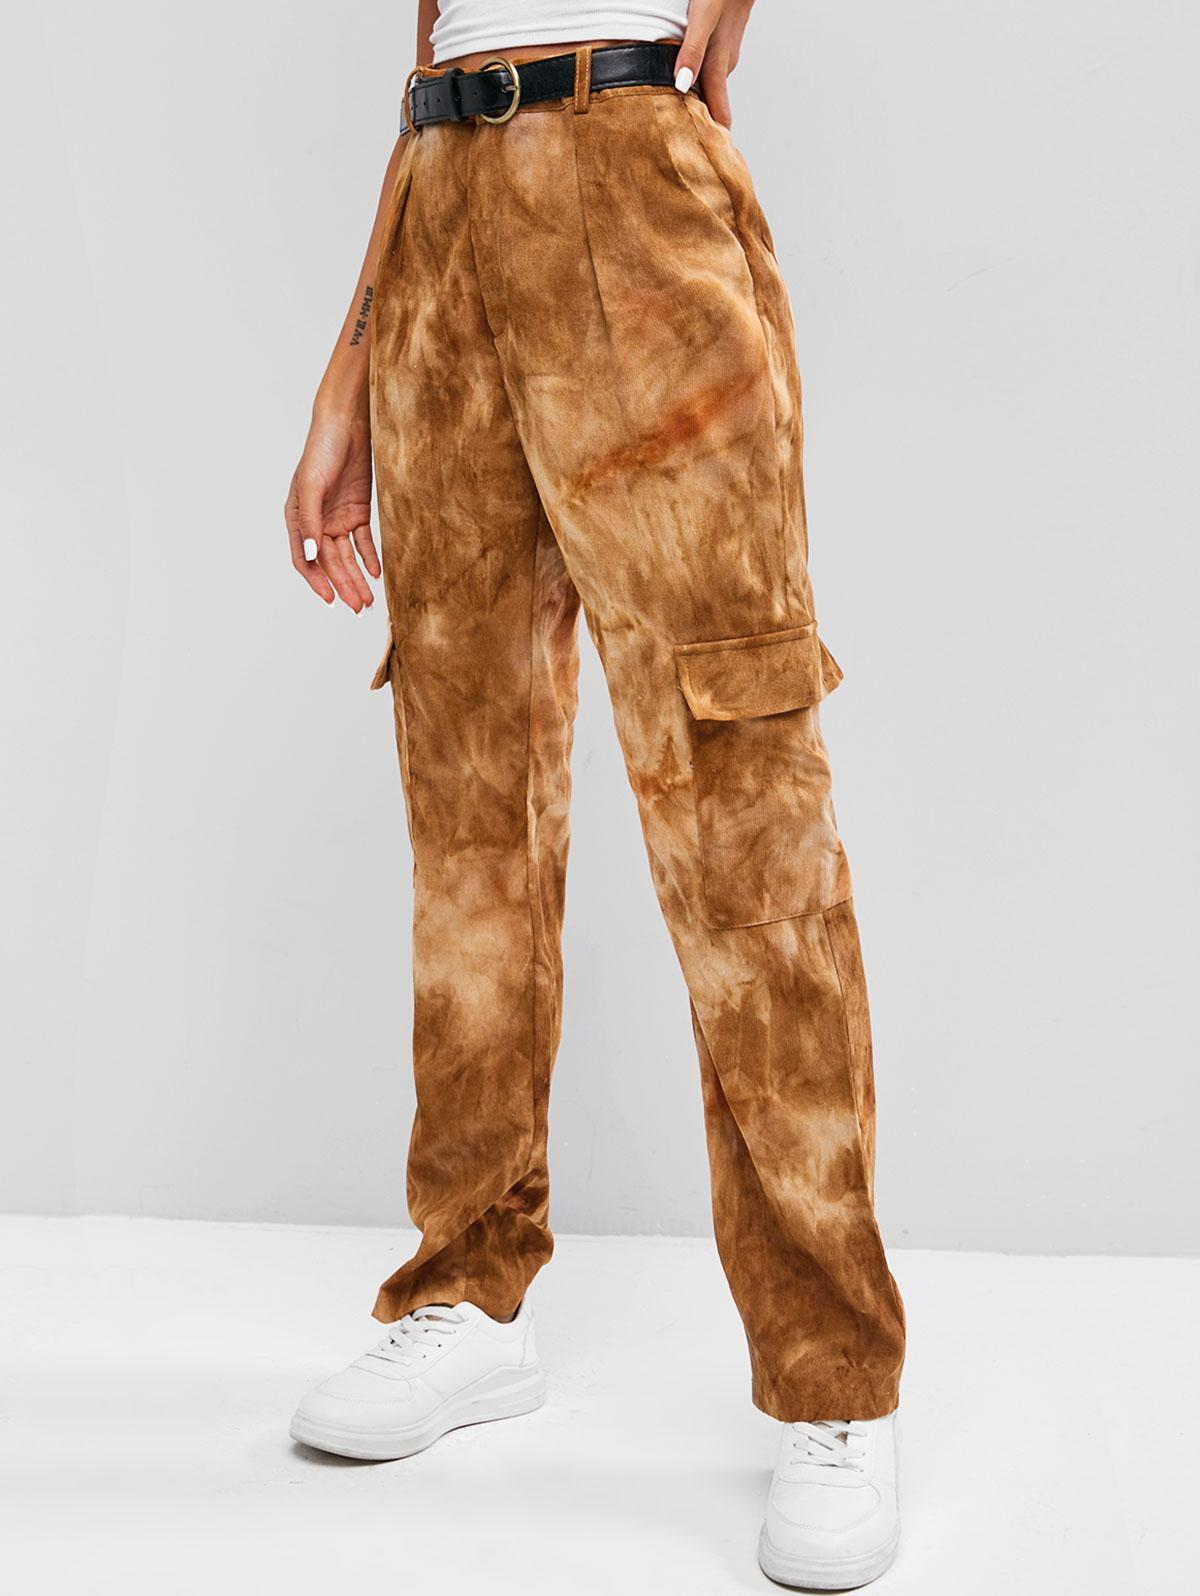 Tie Dye High Waisted Corduroy Cargo Pants